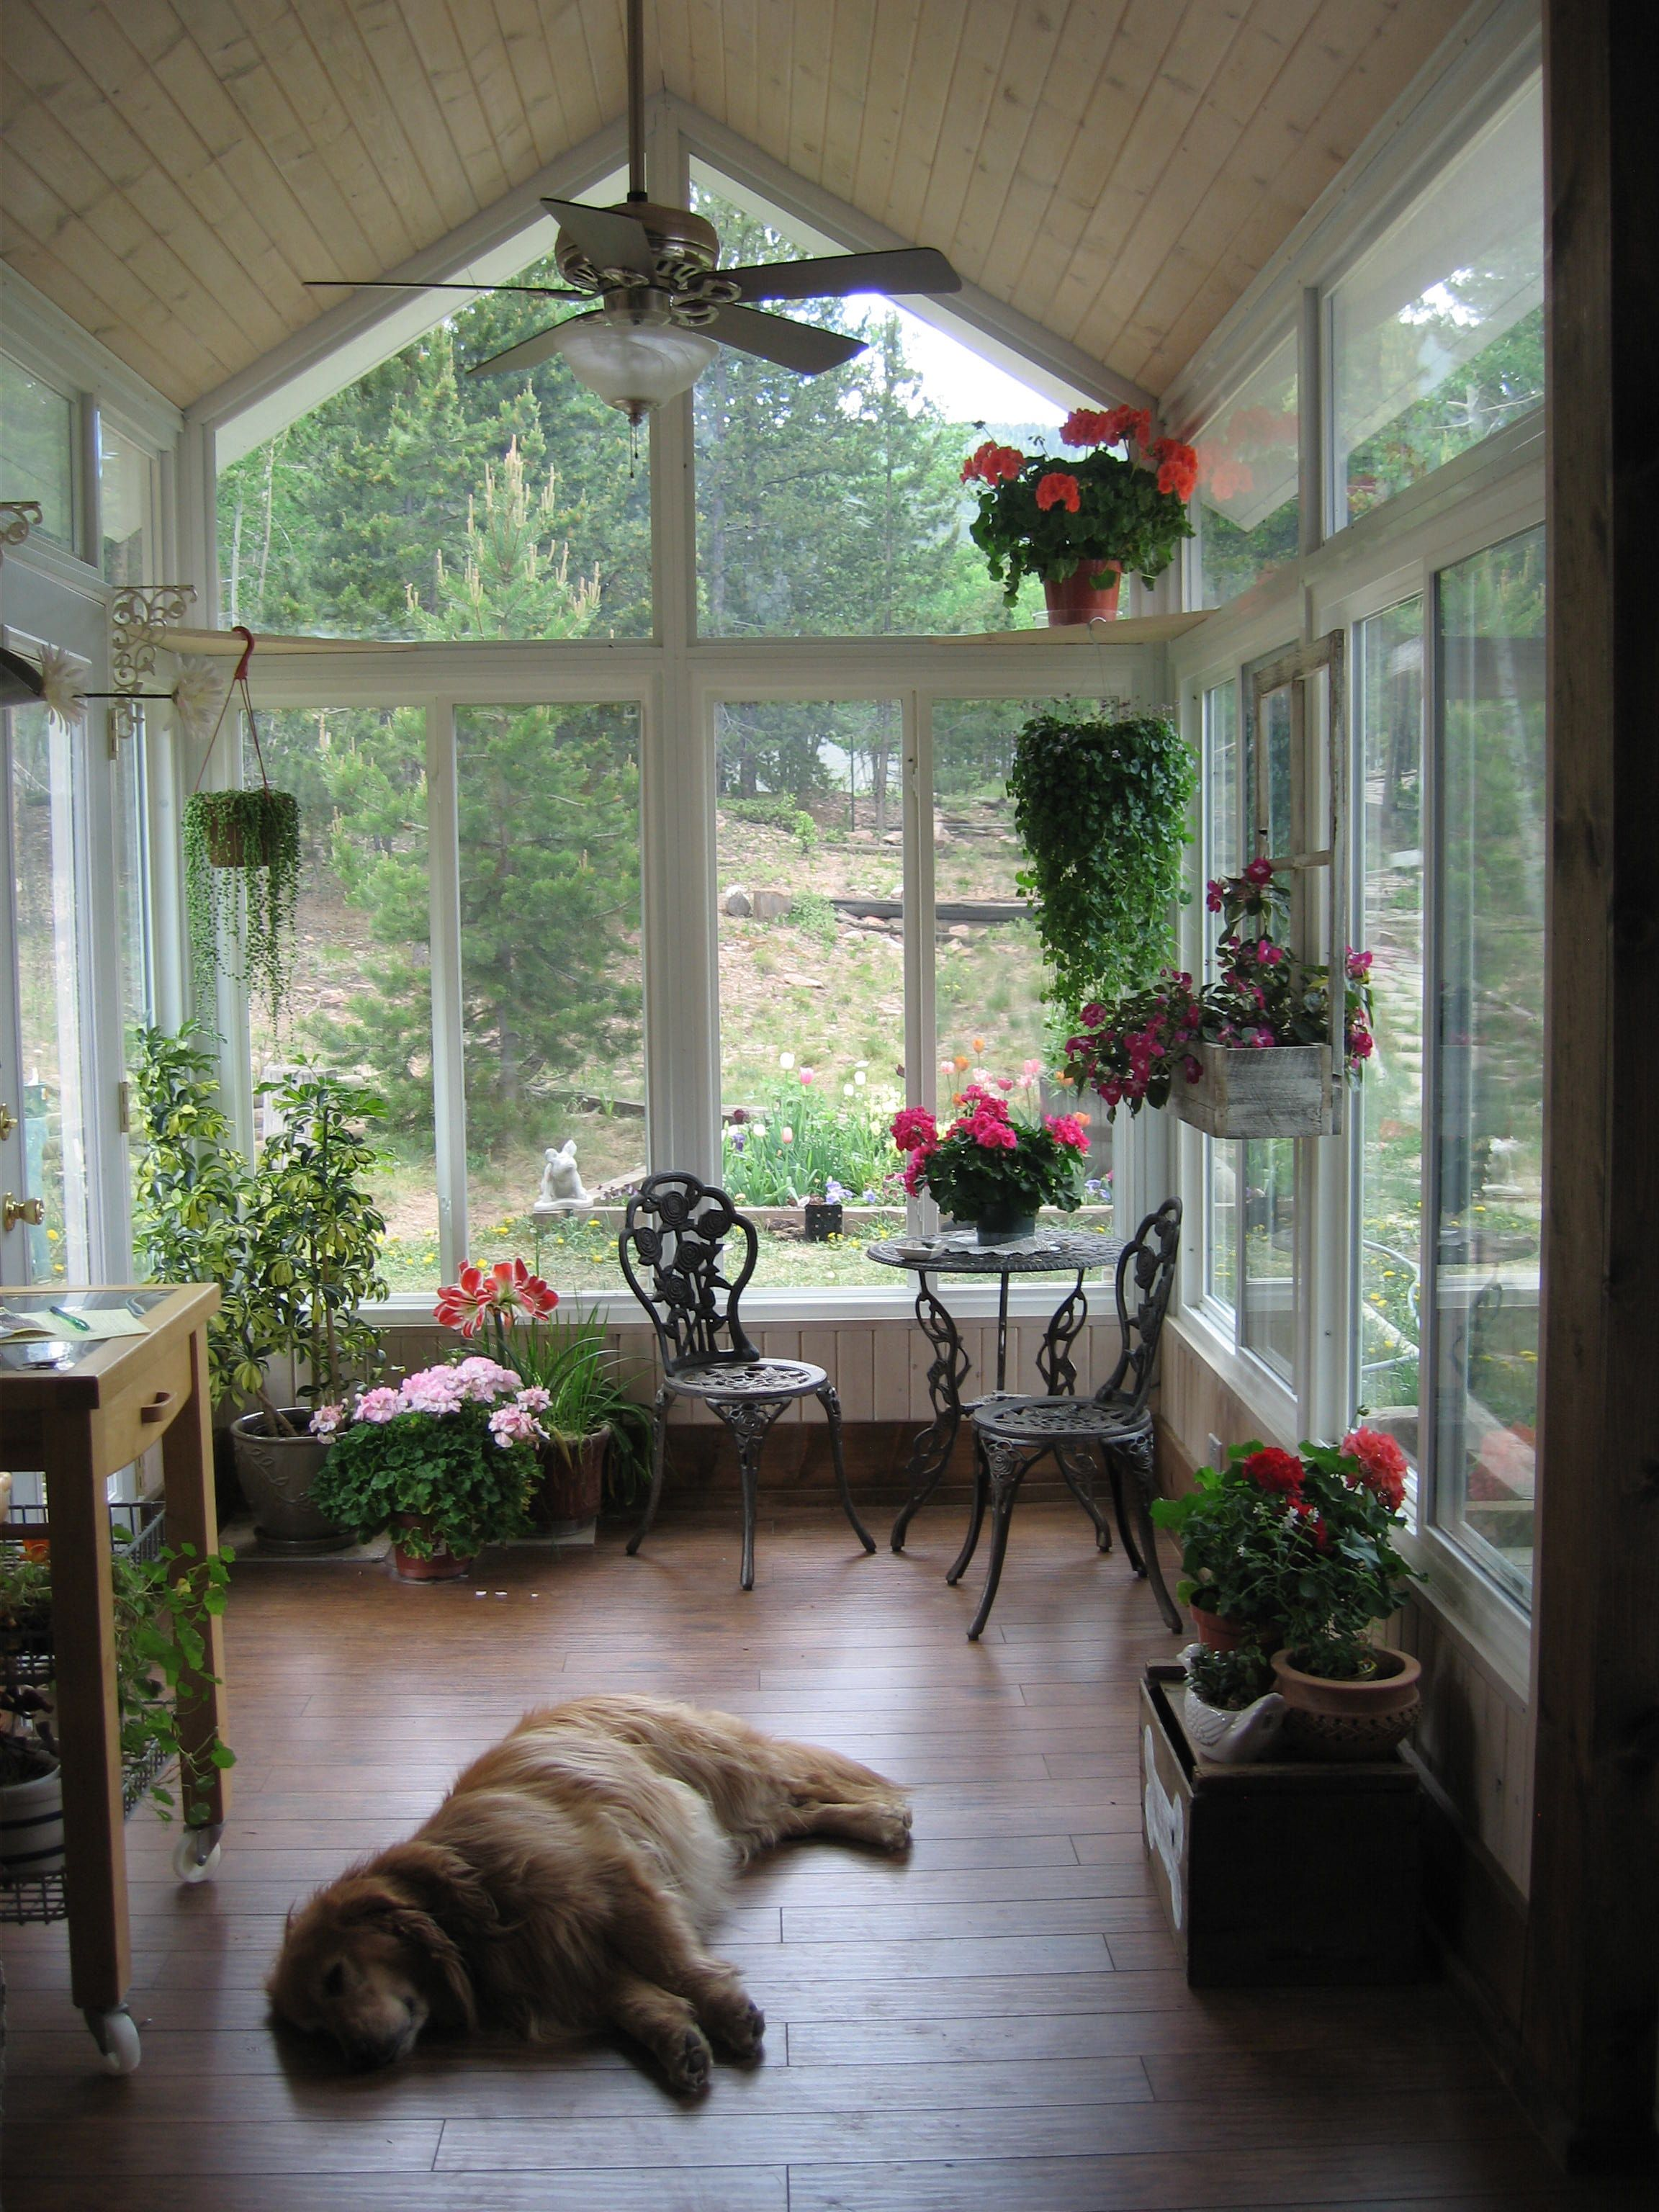 Explore Sunroom Decorating, Sunroom Ideas, And More!